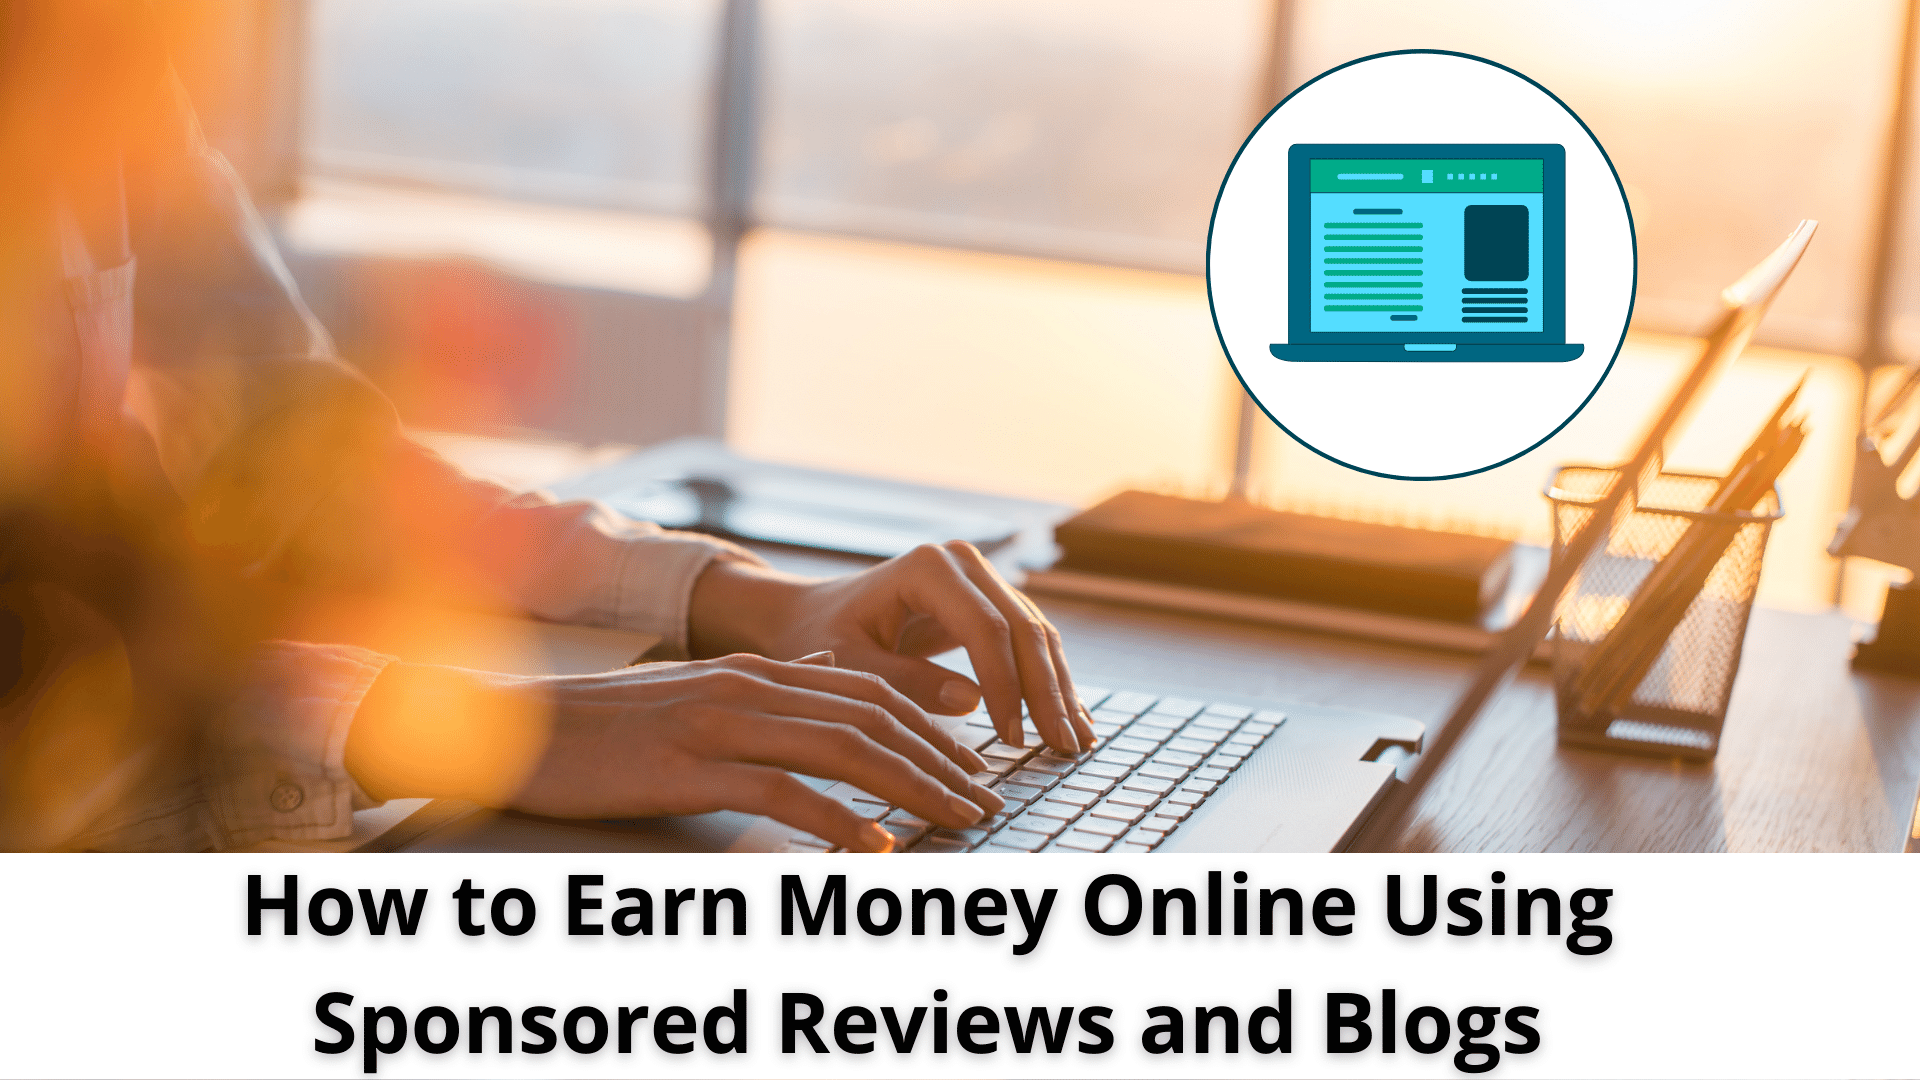 How to Earn Money Online Using Sponsored Reviews and Blogs 41